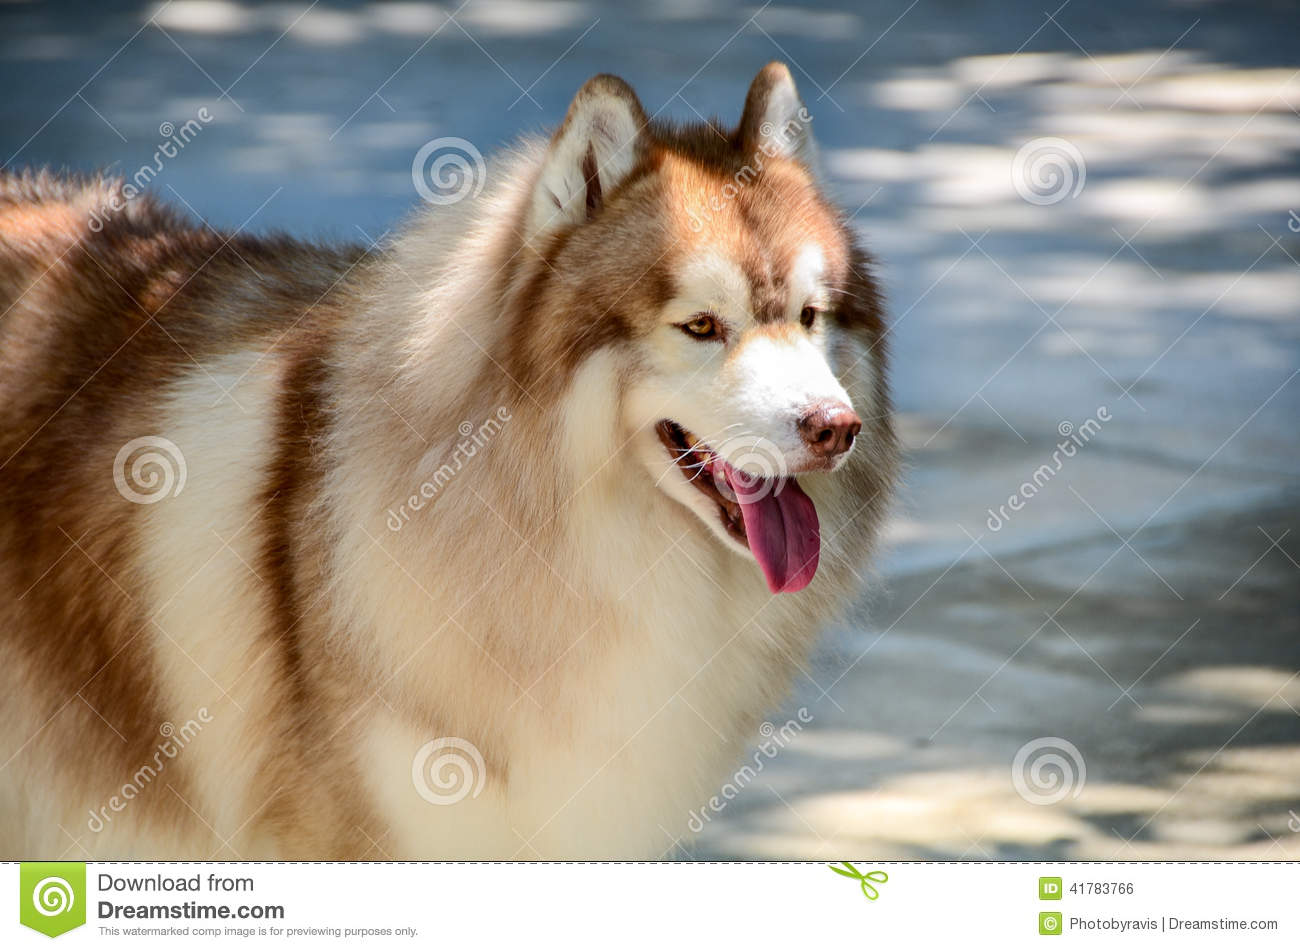 Red siberian husky stock photo  Image of cute, brown - 41783766